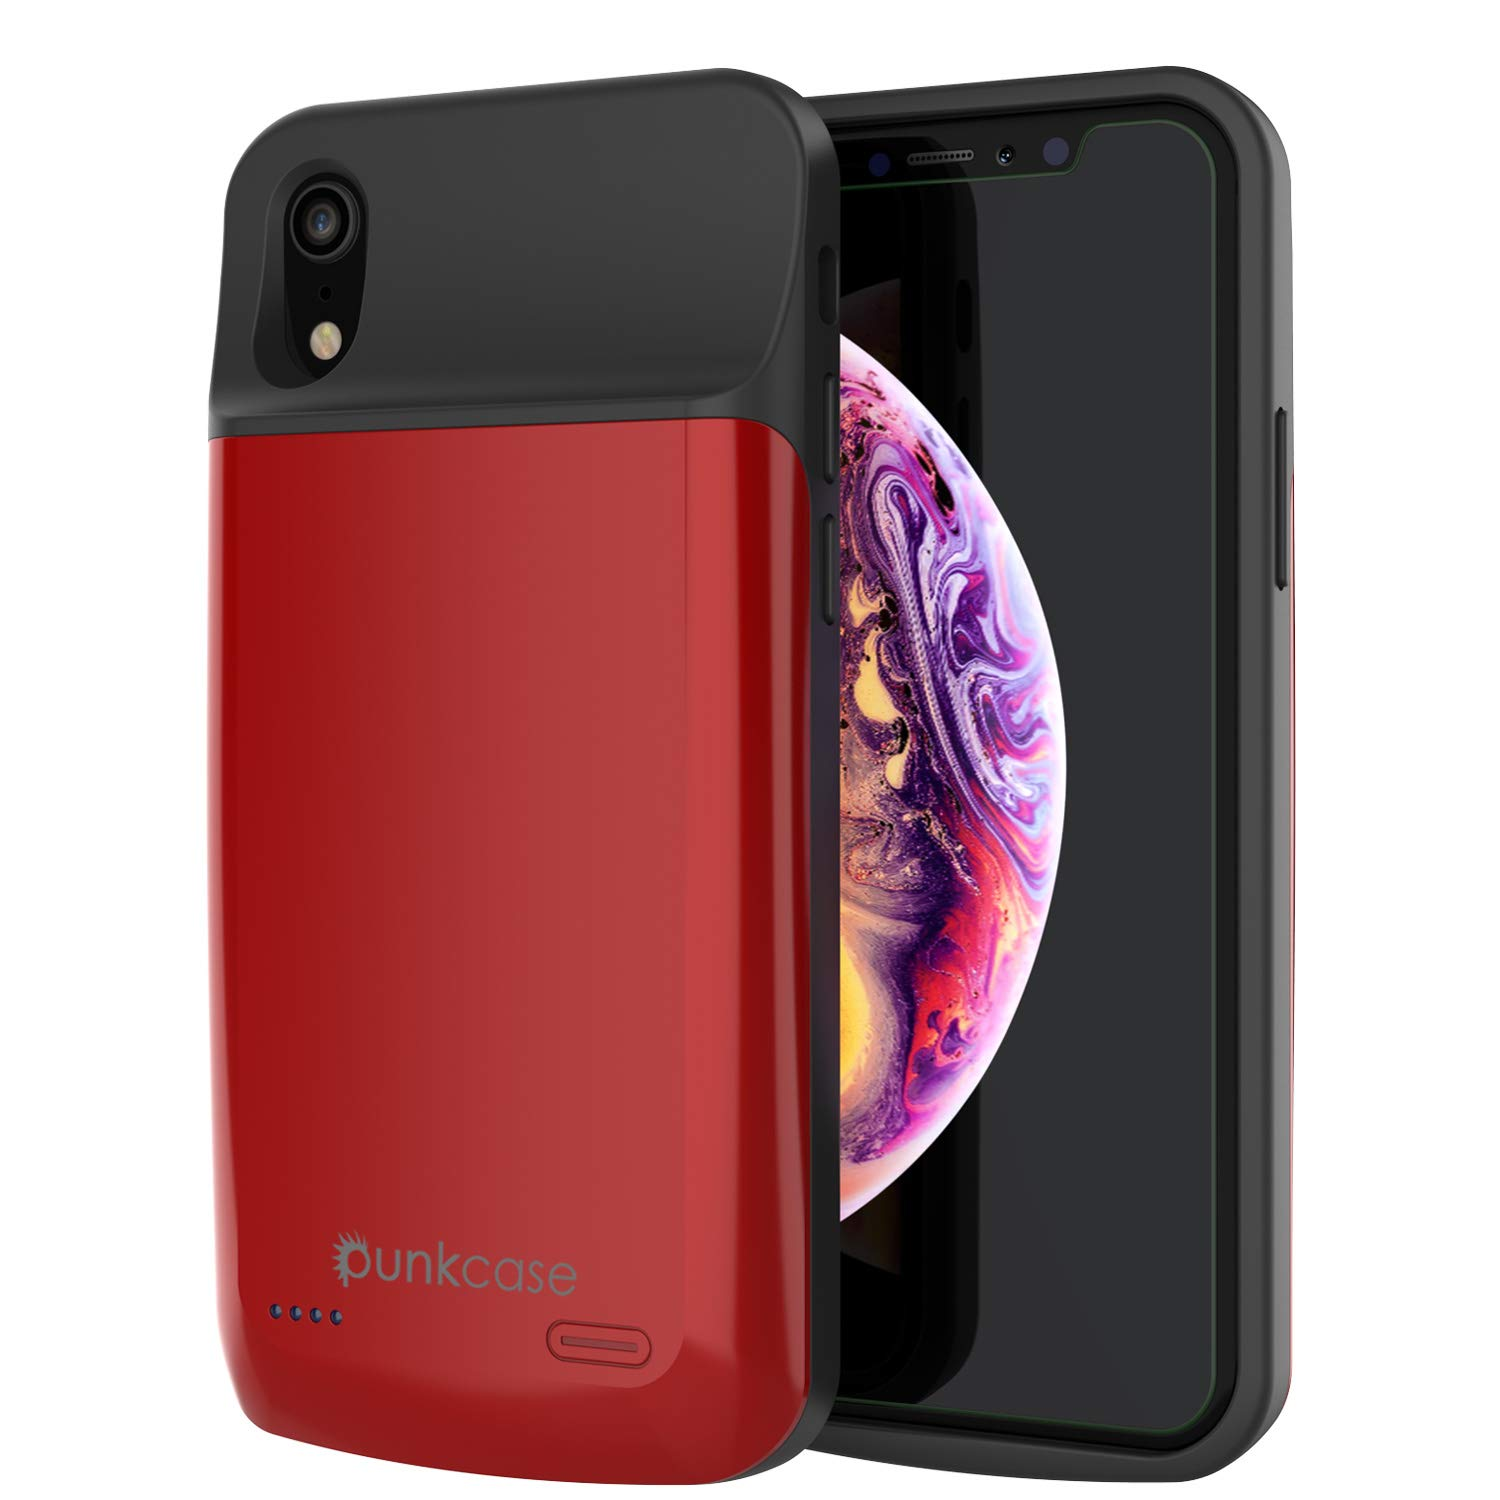 Funda Con Bateria de 6000mah para Apple Iphone Xr PUNKCASE [7L5KZNTF]